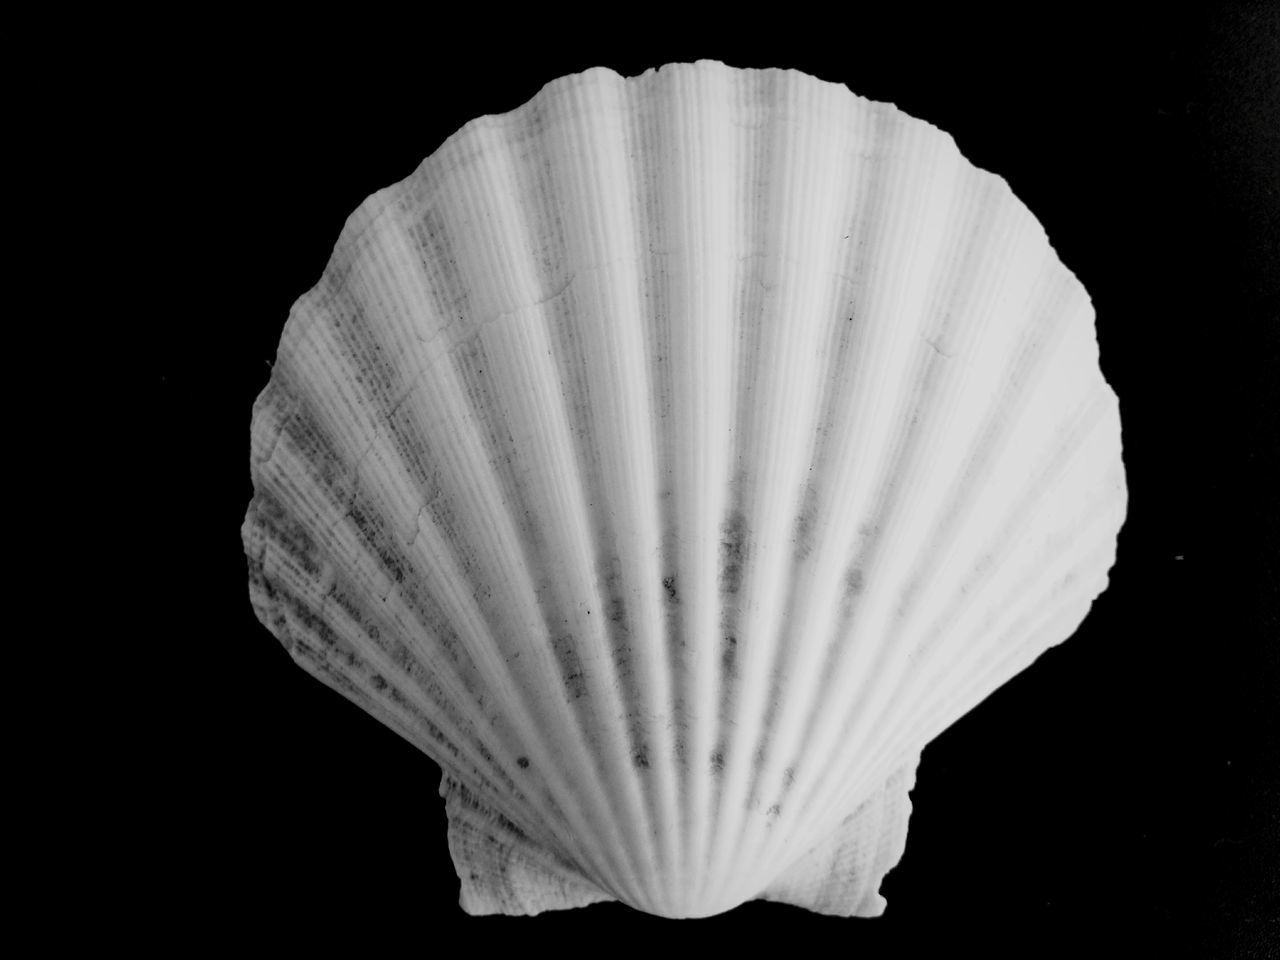 Black Background No People Close-up Space Seashell Sea Shell Summer Summertime Animal Animal Themes Animal Photography Animal Body Part Animal Backgrounds Backgrounds Beauty In Nature Vintage